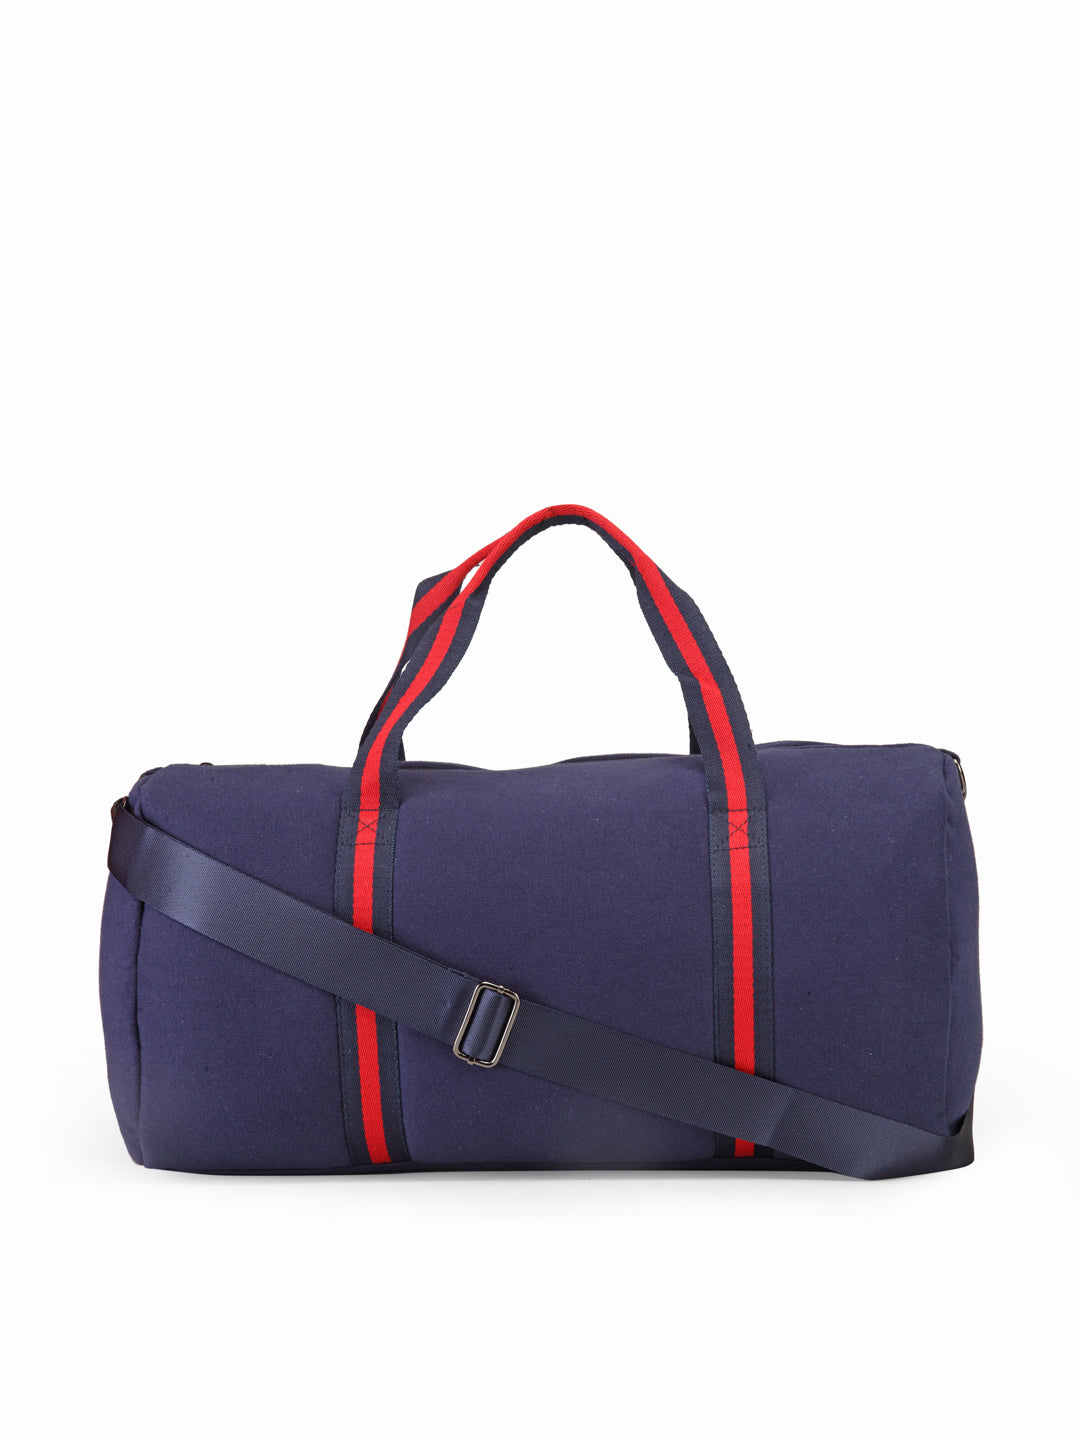 Womens Blue Duffle Bag - London Rag India